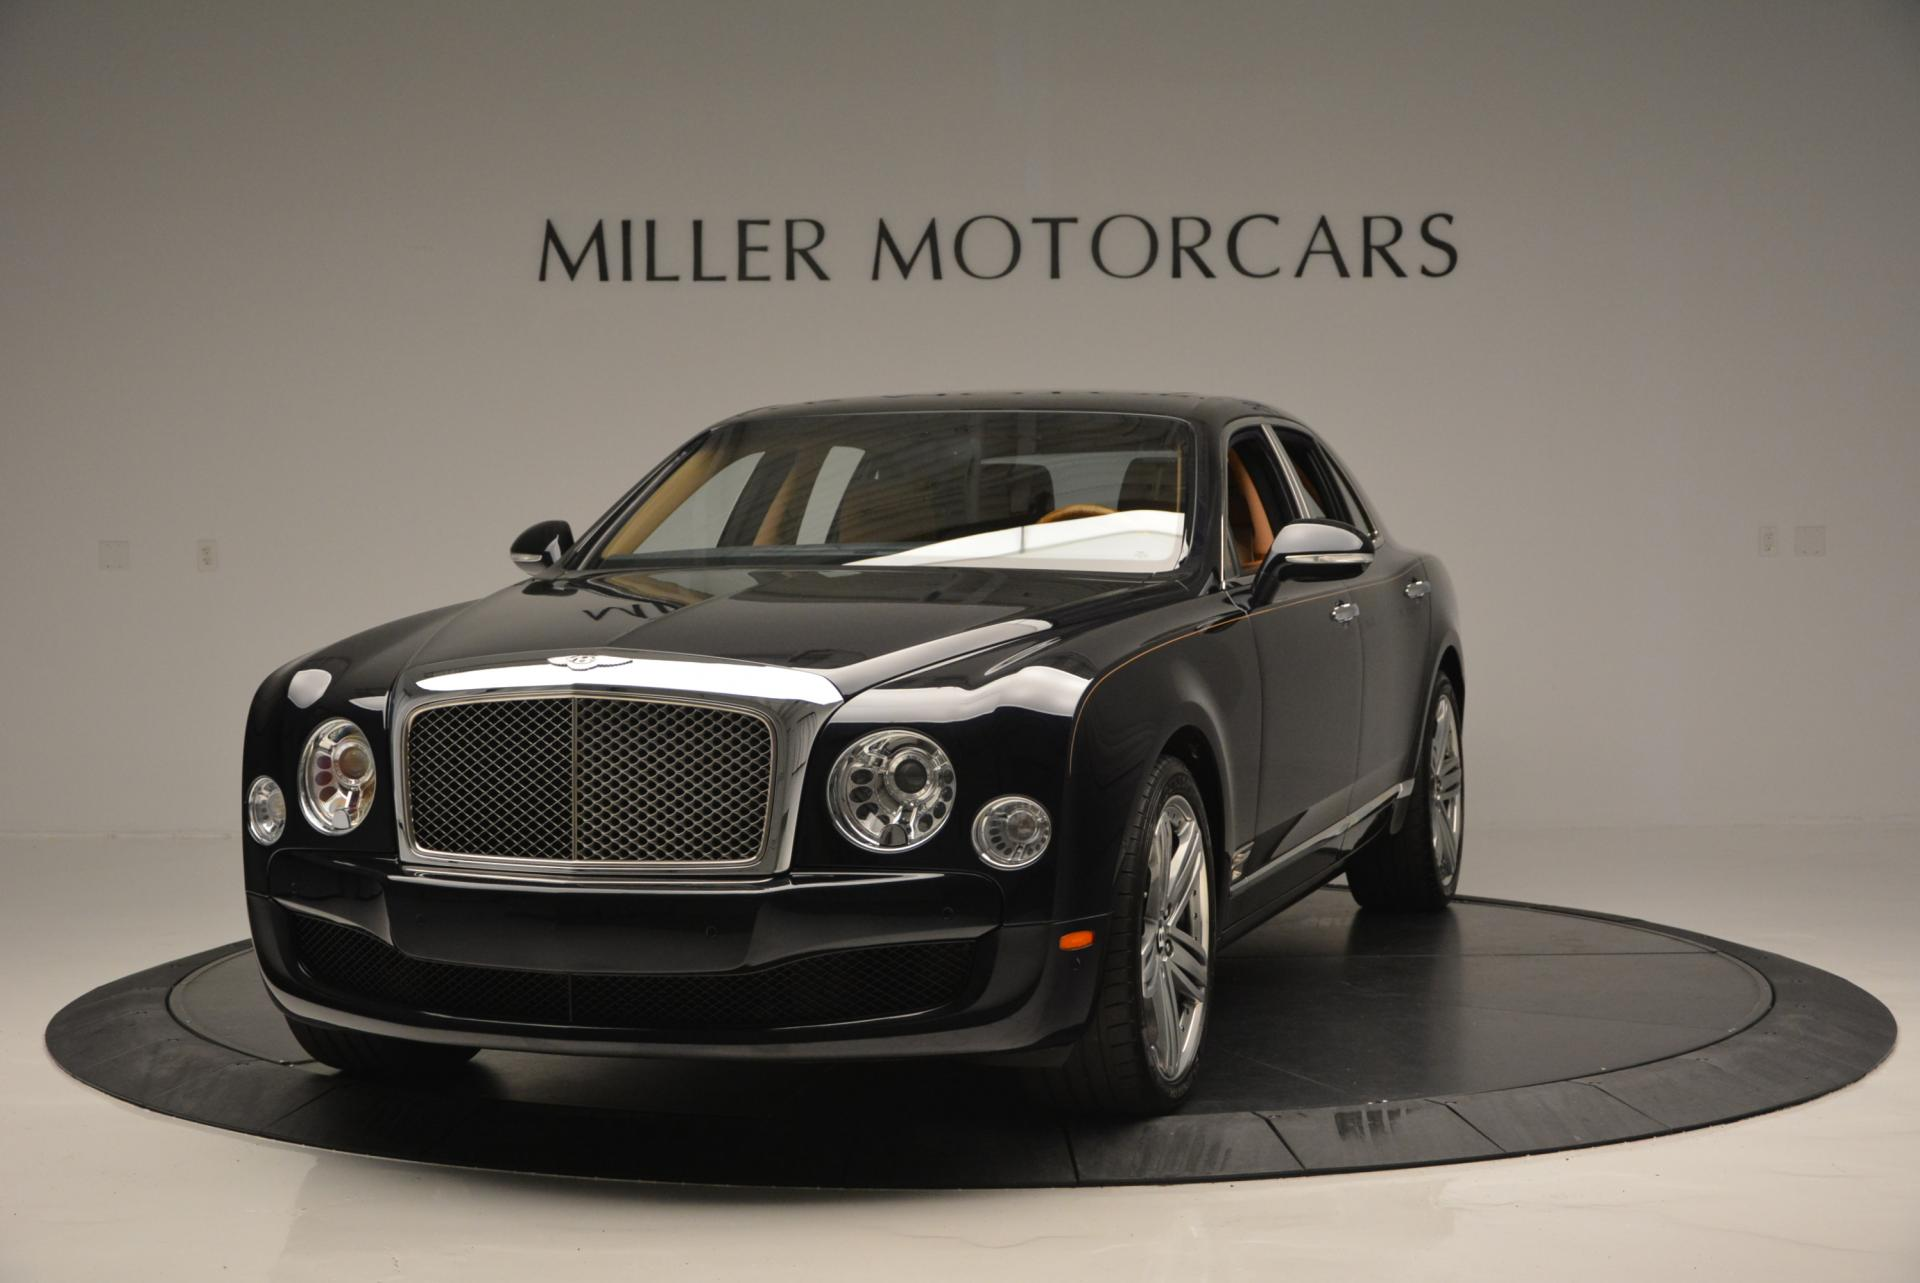 Used 2013 Bentley Mulsanne Le Mans Edition- Number 1 of 48 for sale Sold at Aston Martin of Greenwich in Greenwich CT 06830 1